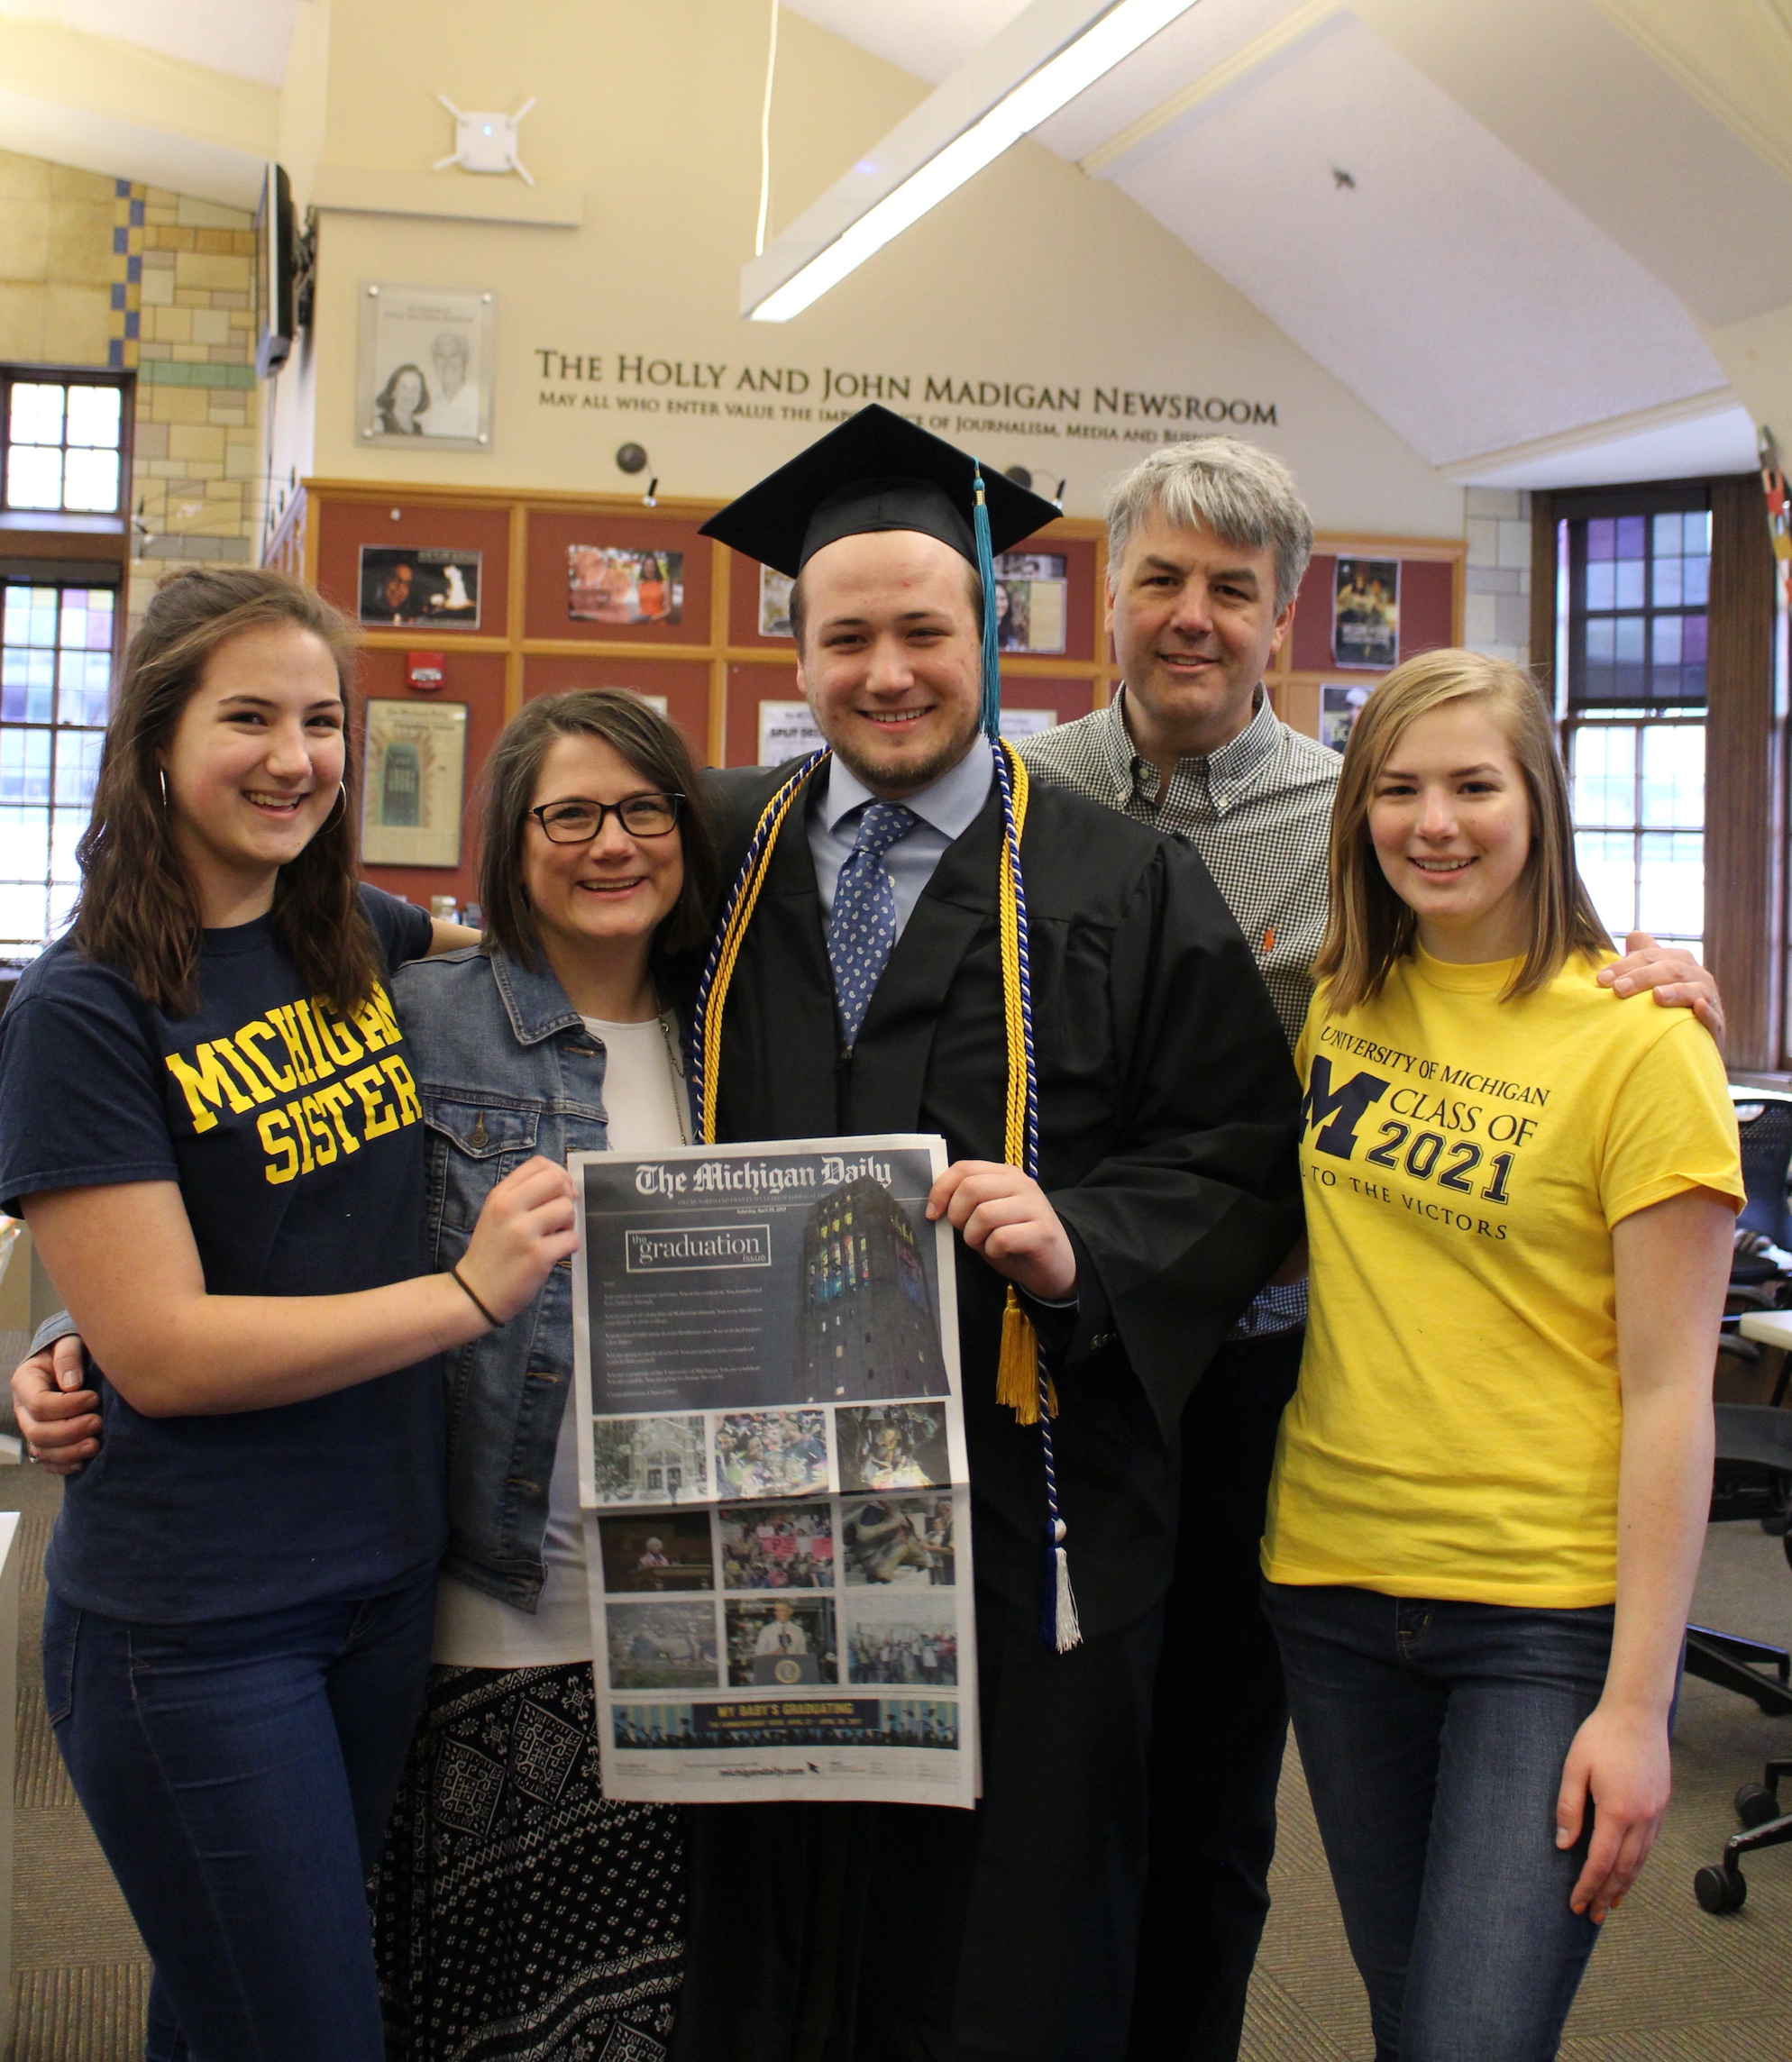 The Michigan Daily sports co-editor Max Bultman and his family celebrate his graduation